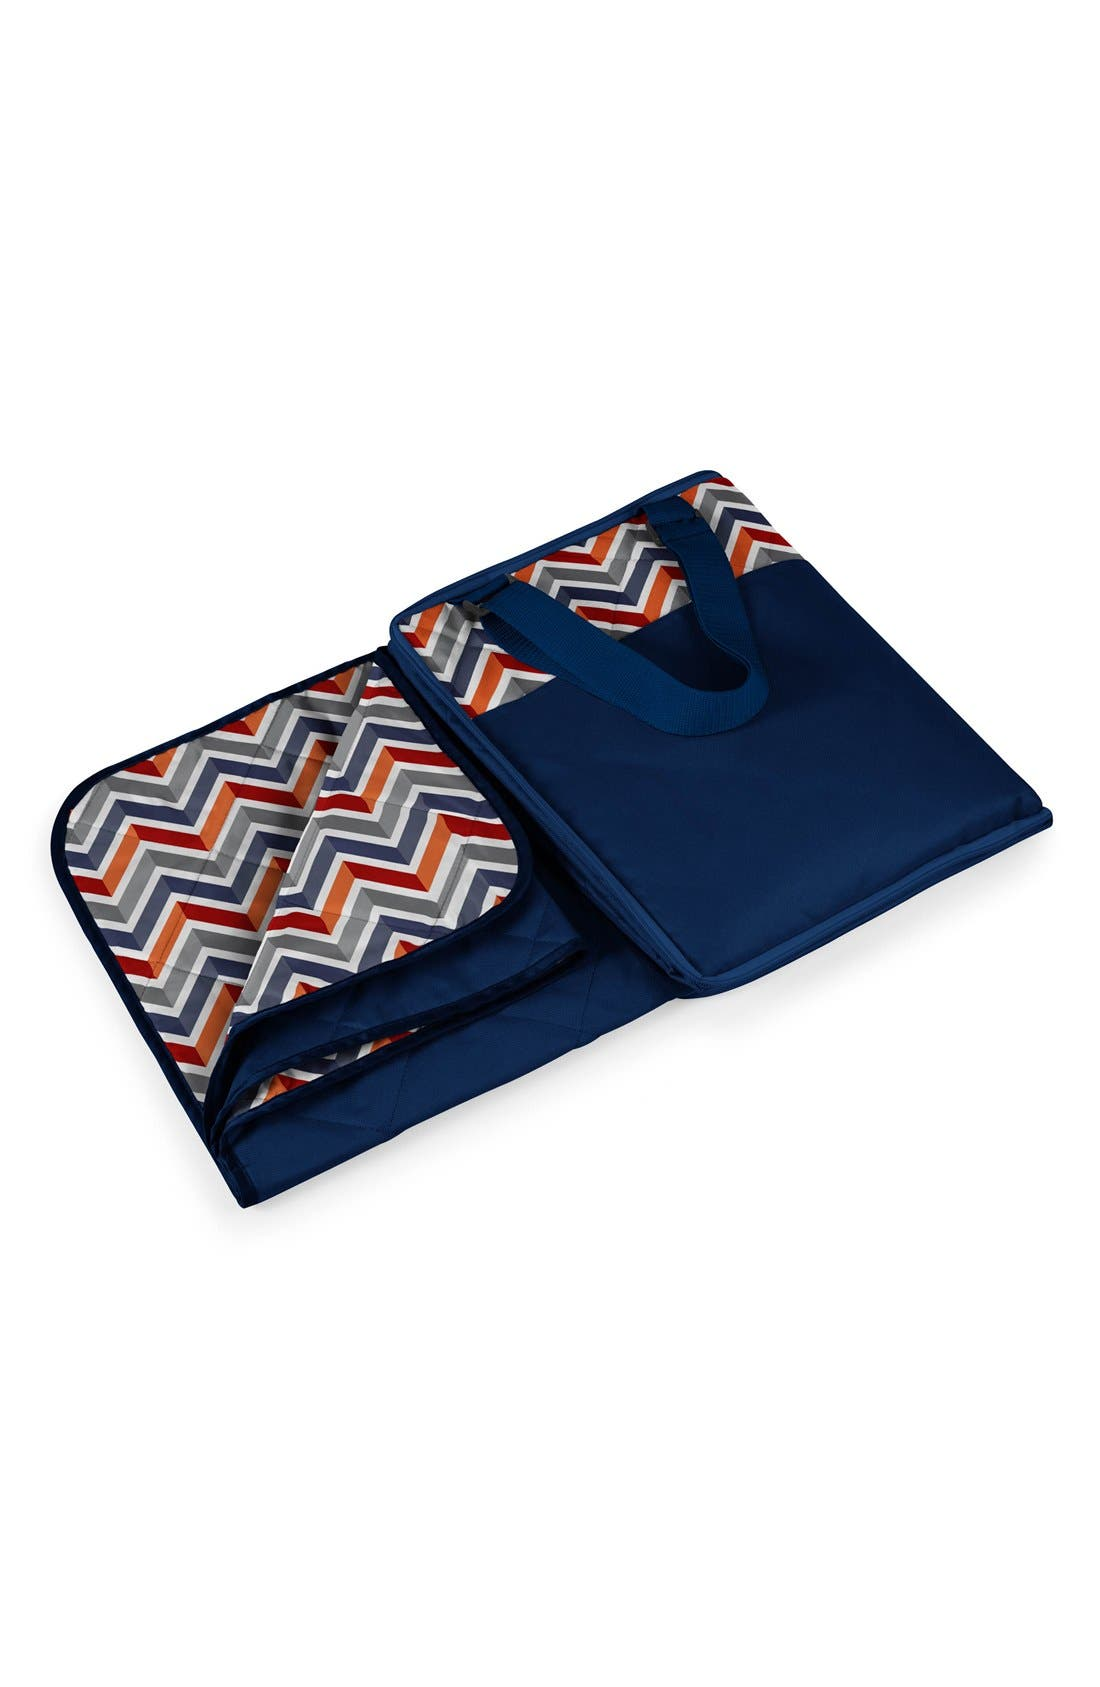 'Vista' Packable Picnic Blanket,                         Main,                         color, Vibe